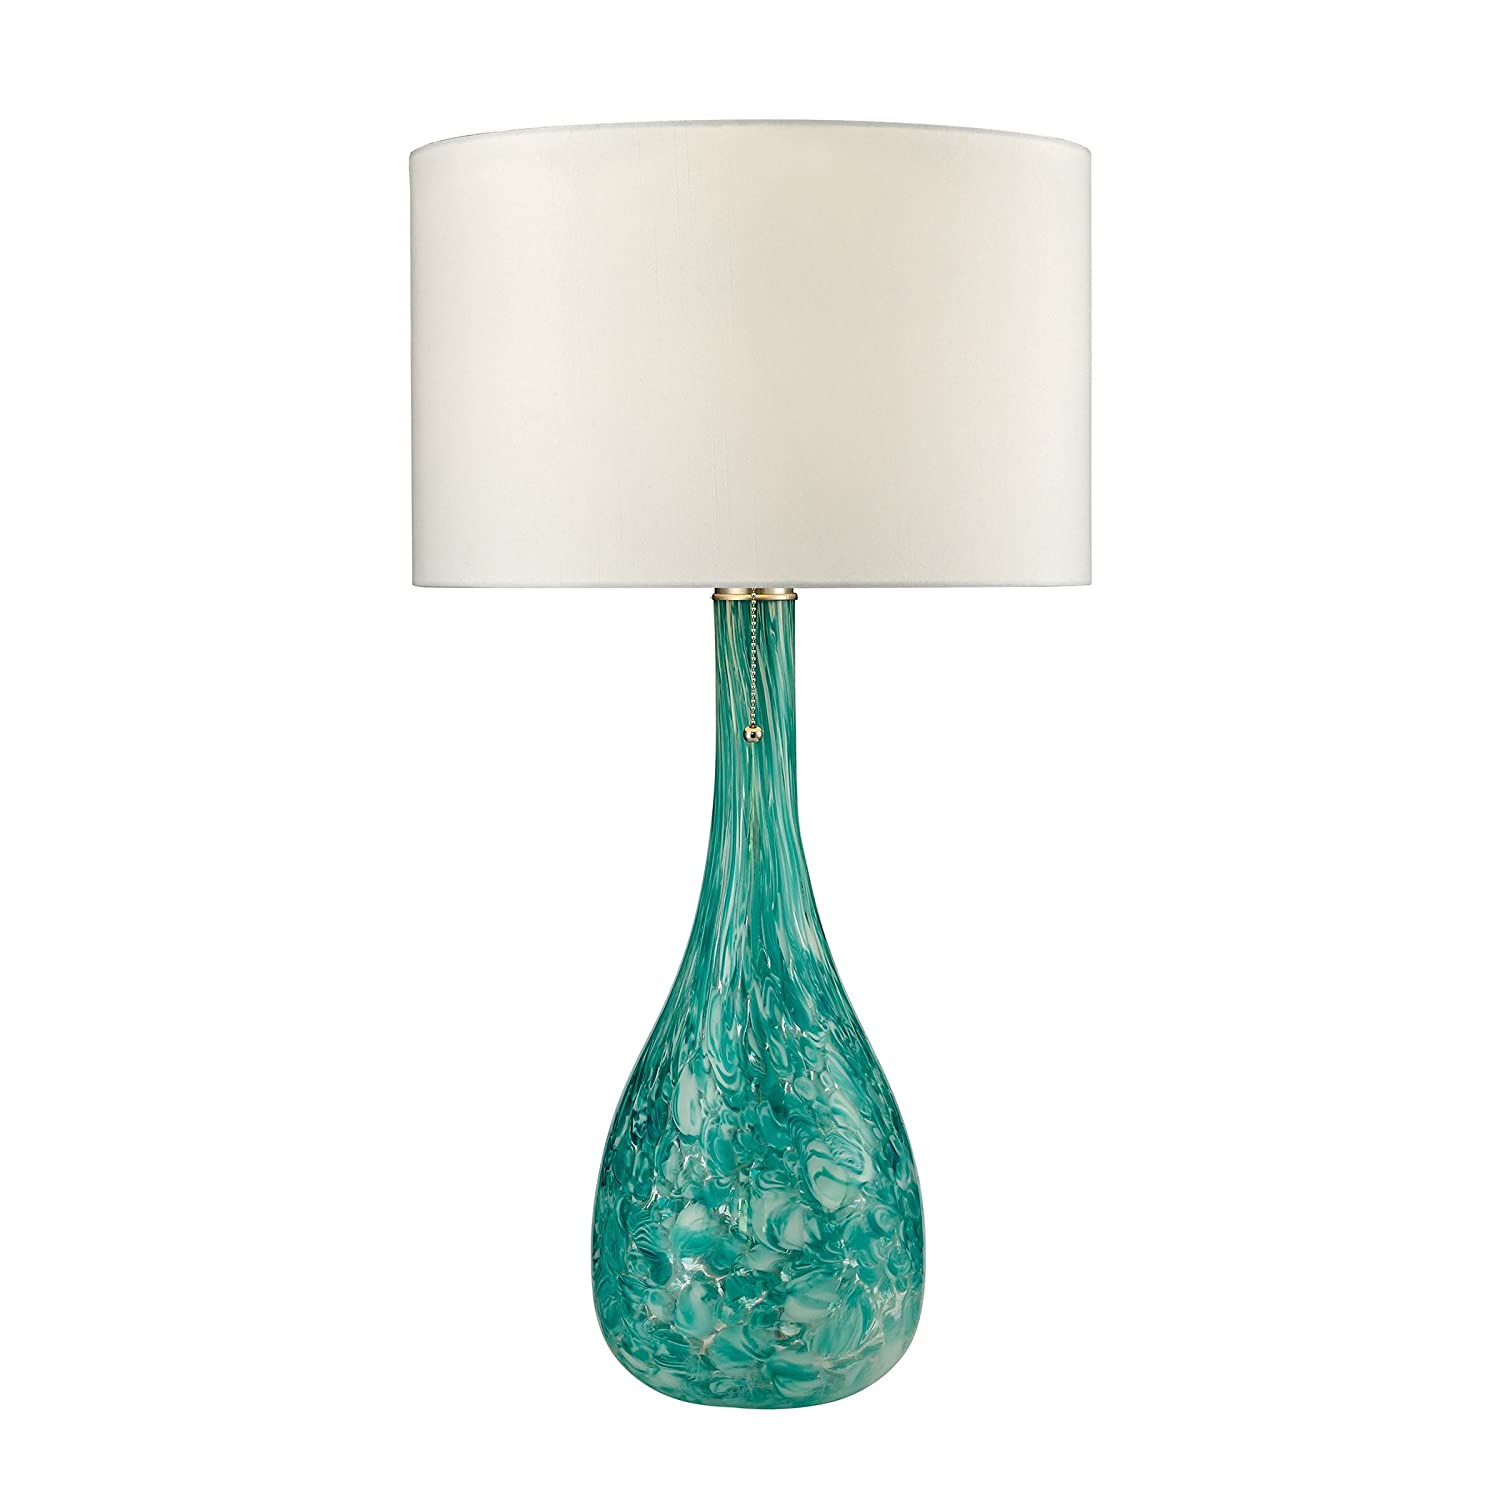 Dimond lighting d2691 blown glass table lamp seafoam green dimond lighting d2691 blown glass table lamp seafoam green amazon aloadofball